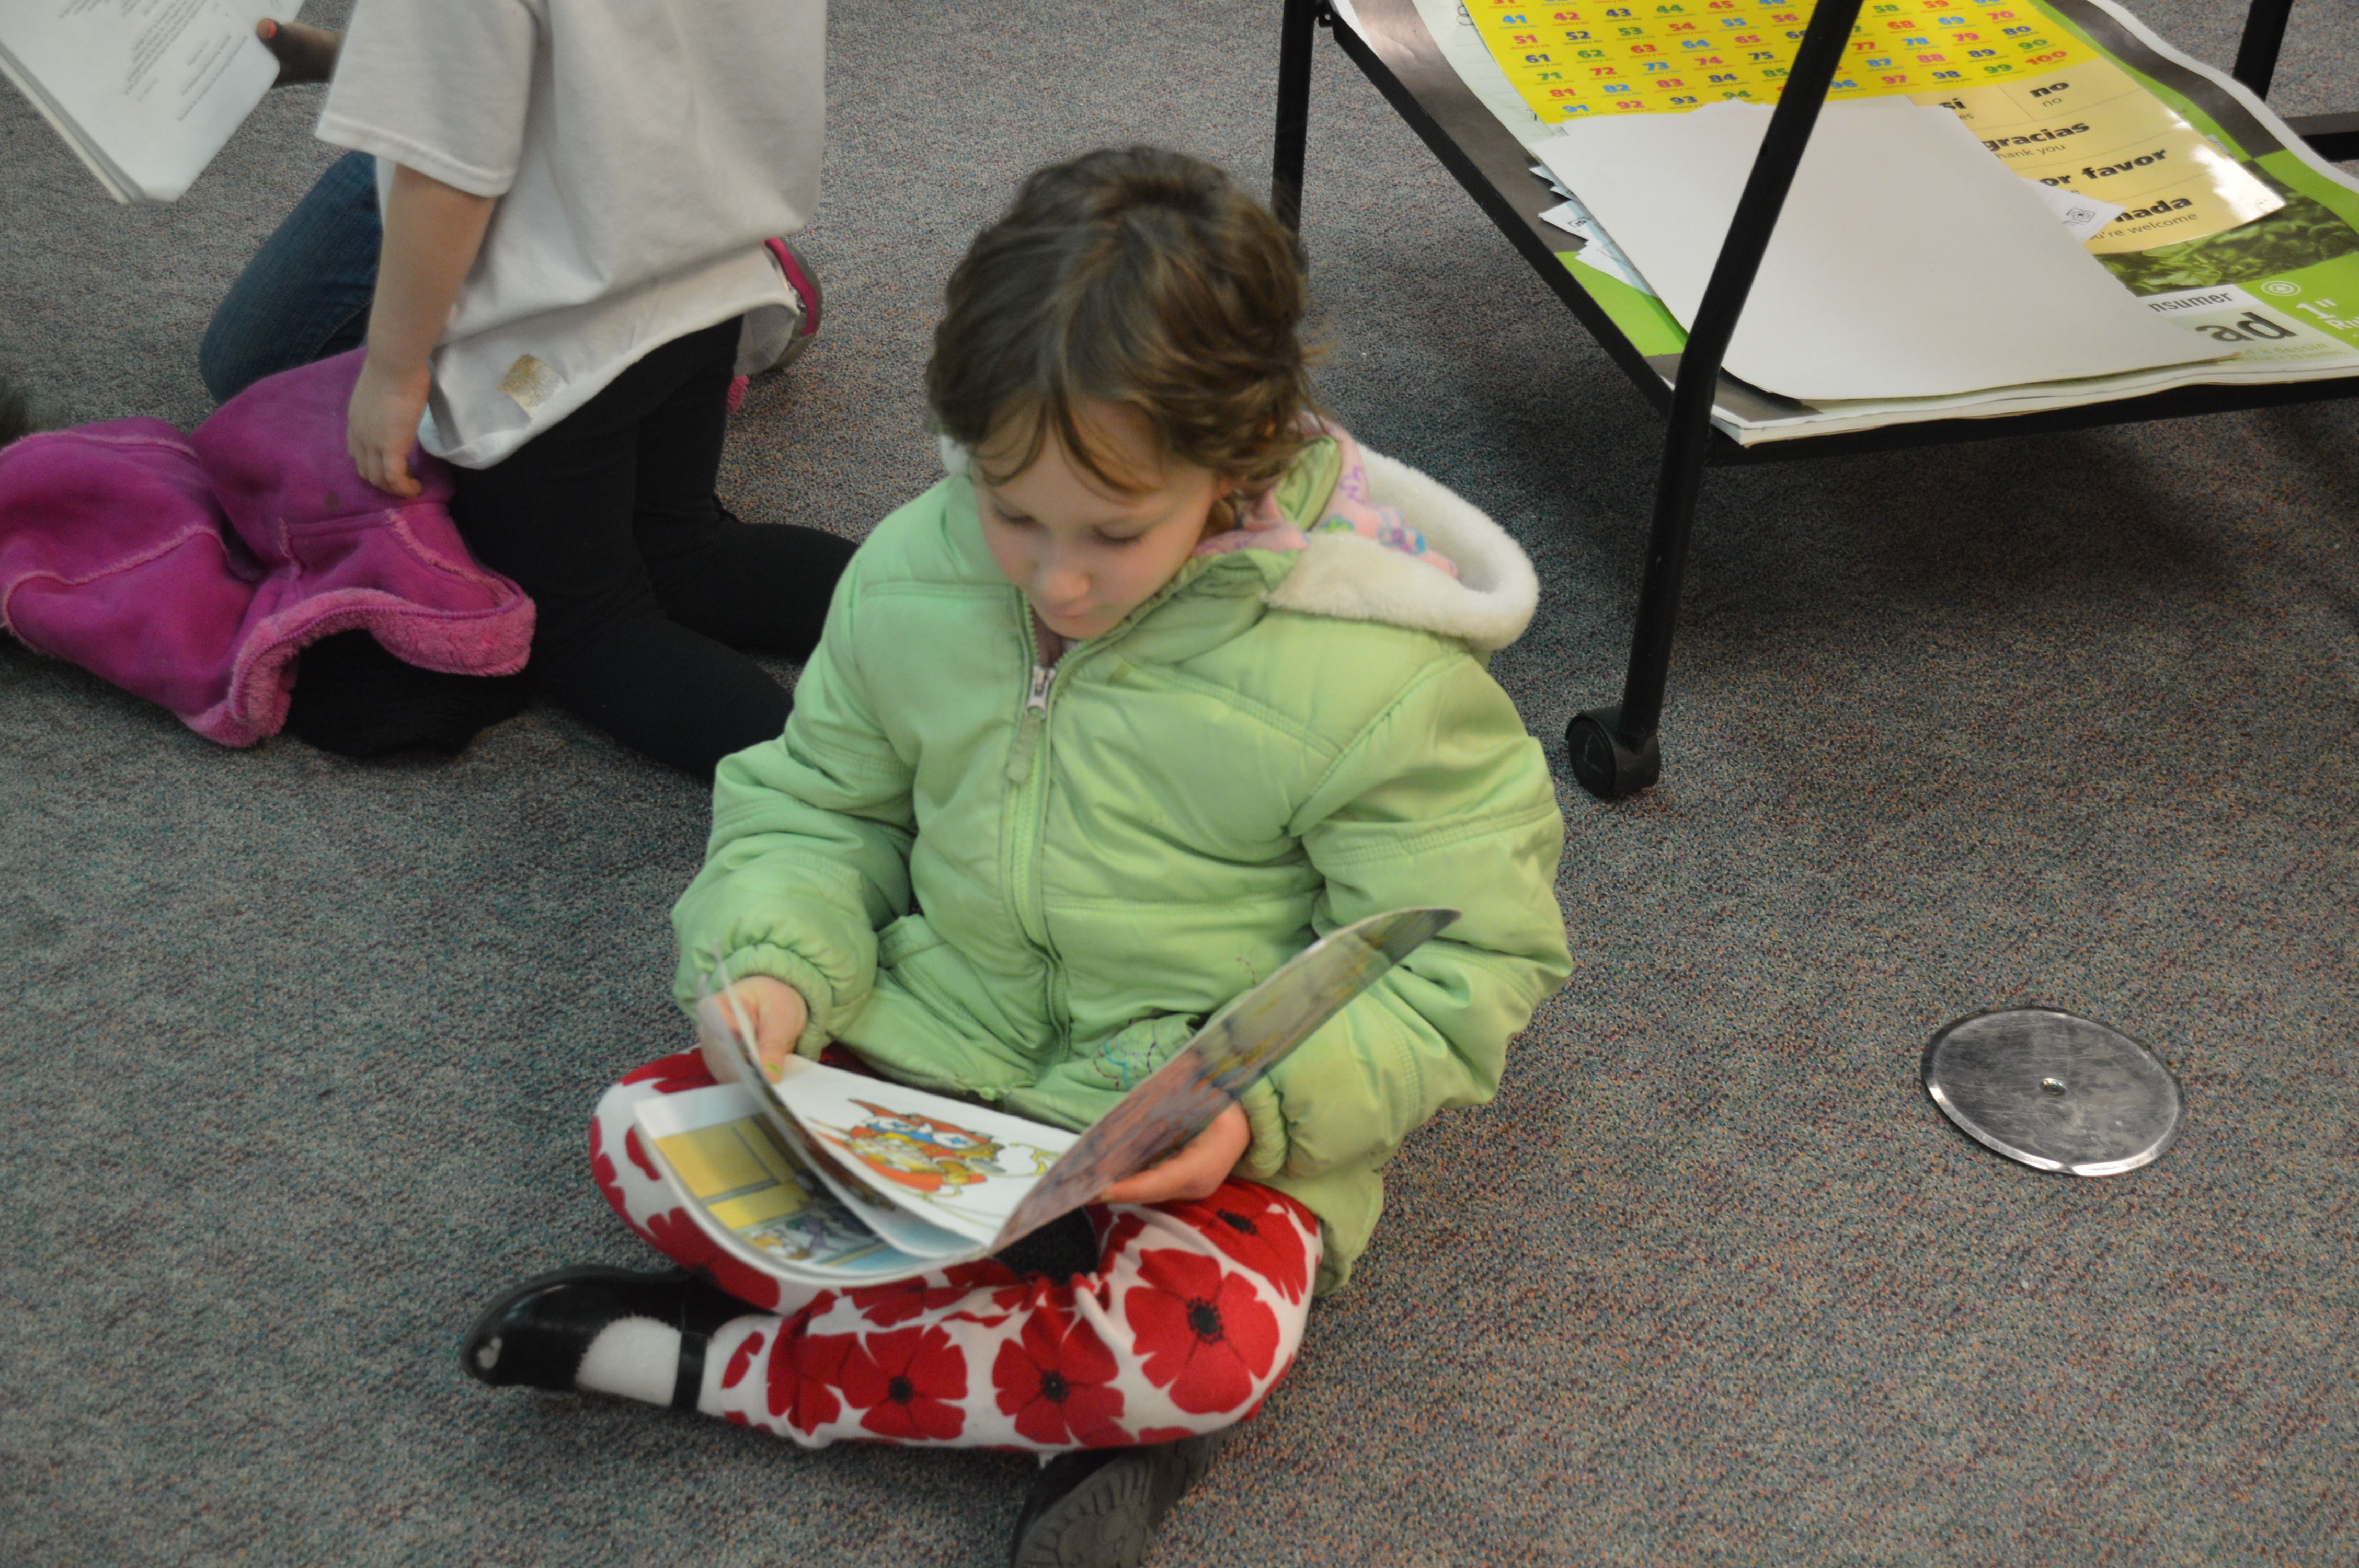 Students were able to check out a copy of the book being read and follow along with the reader.